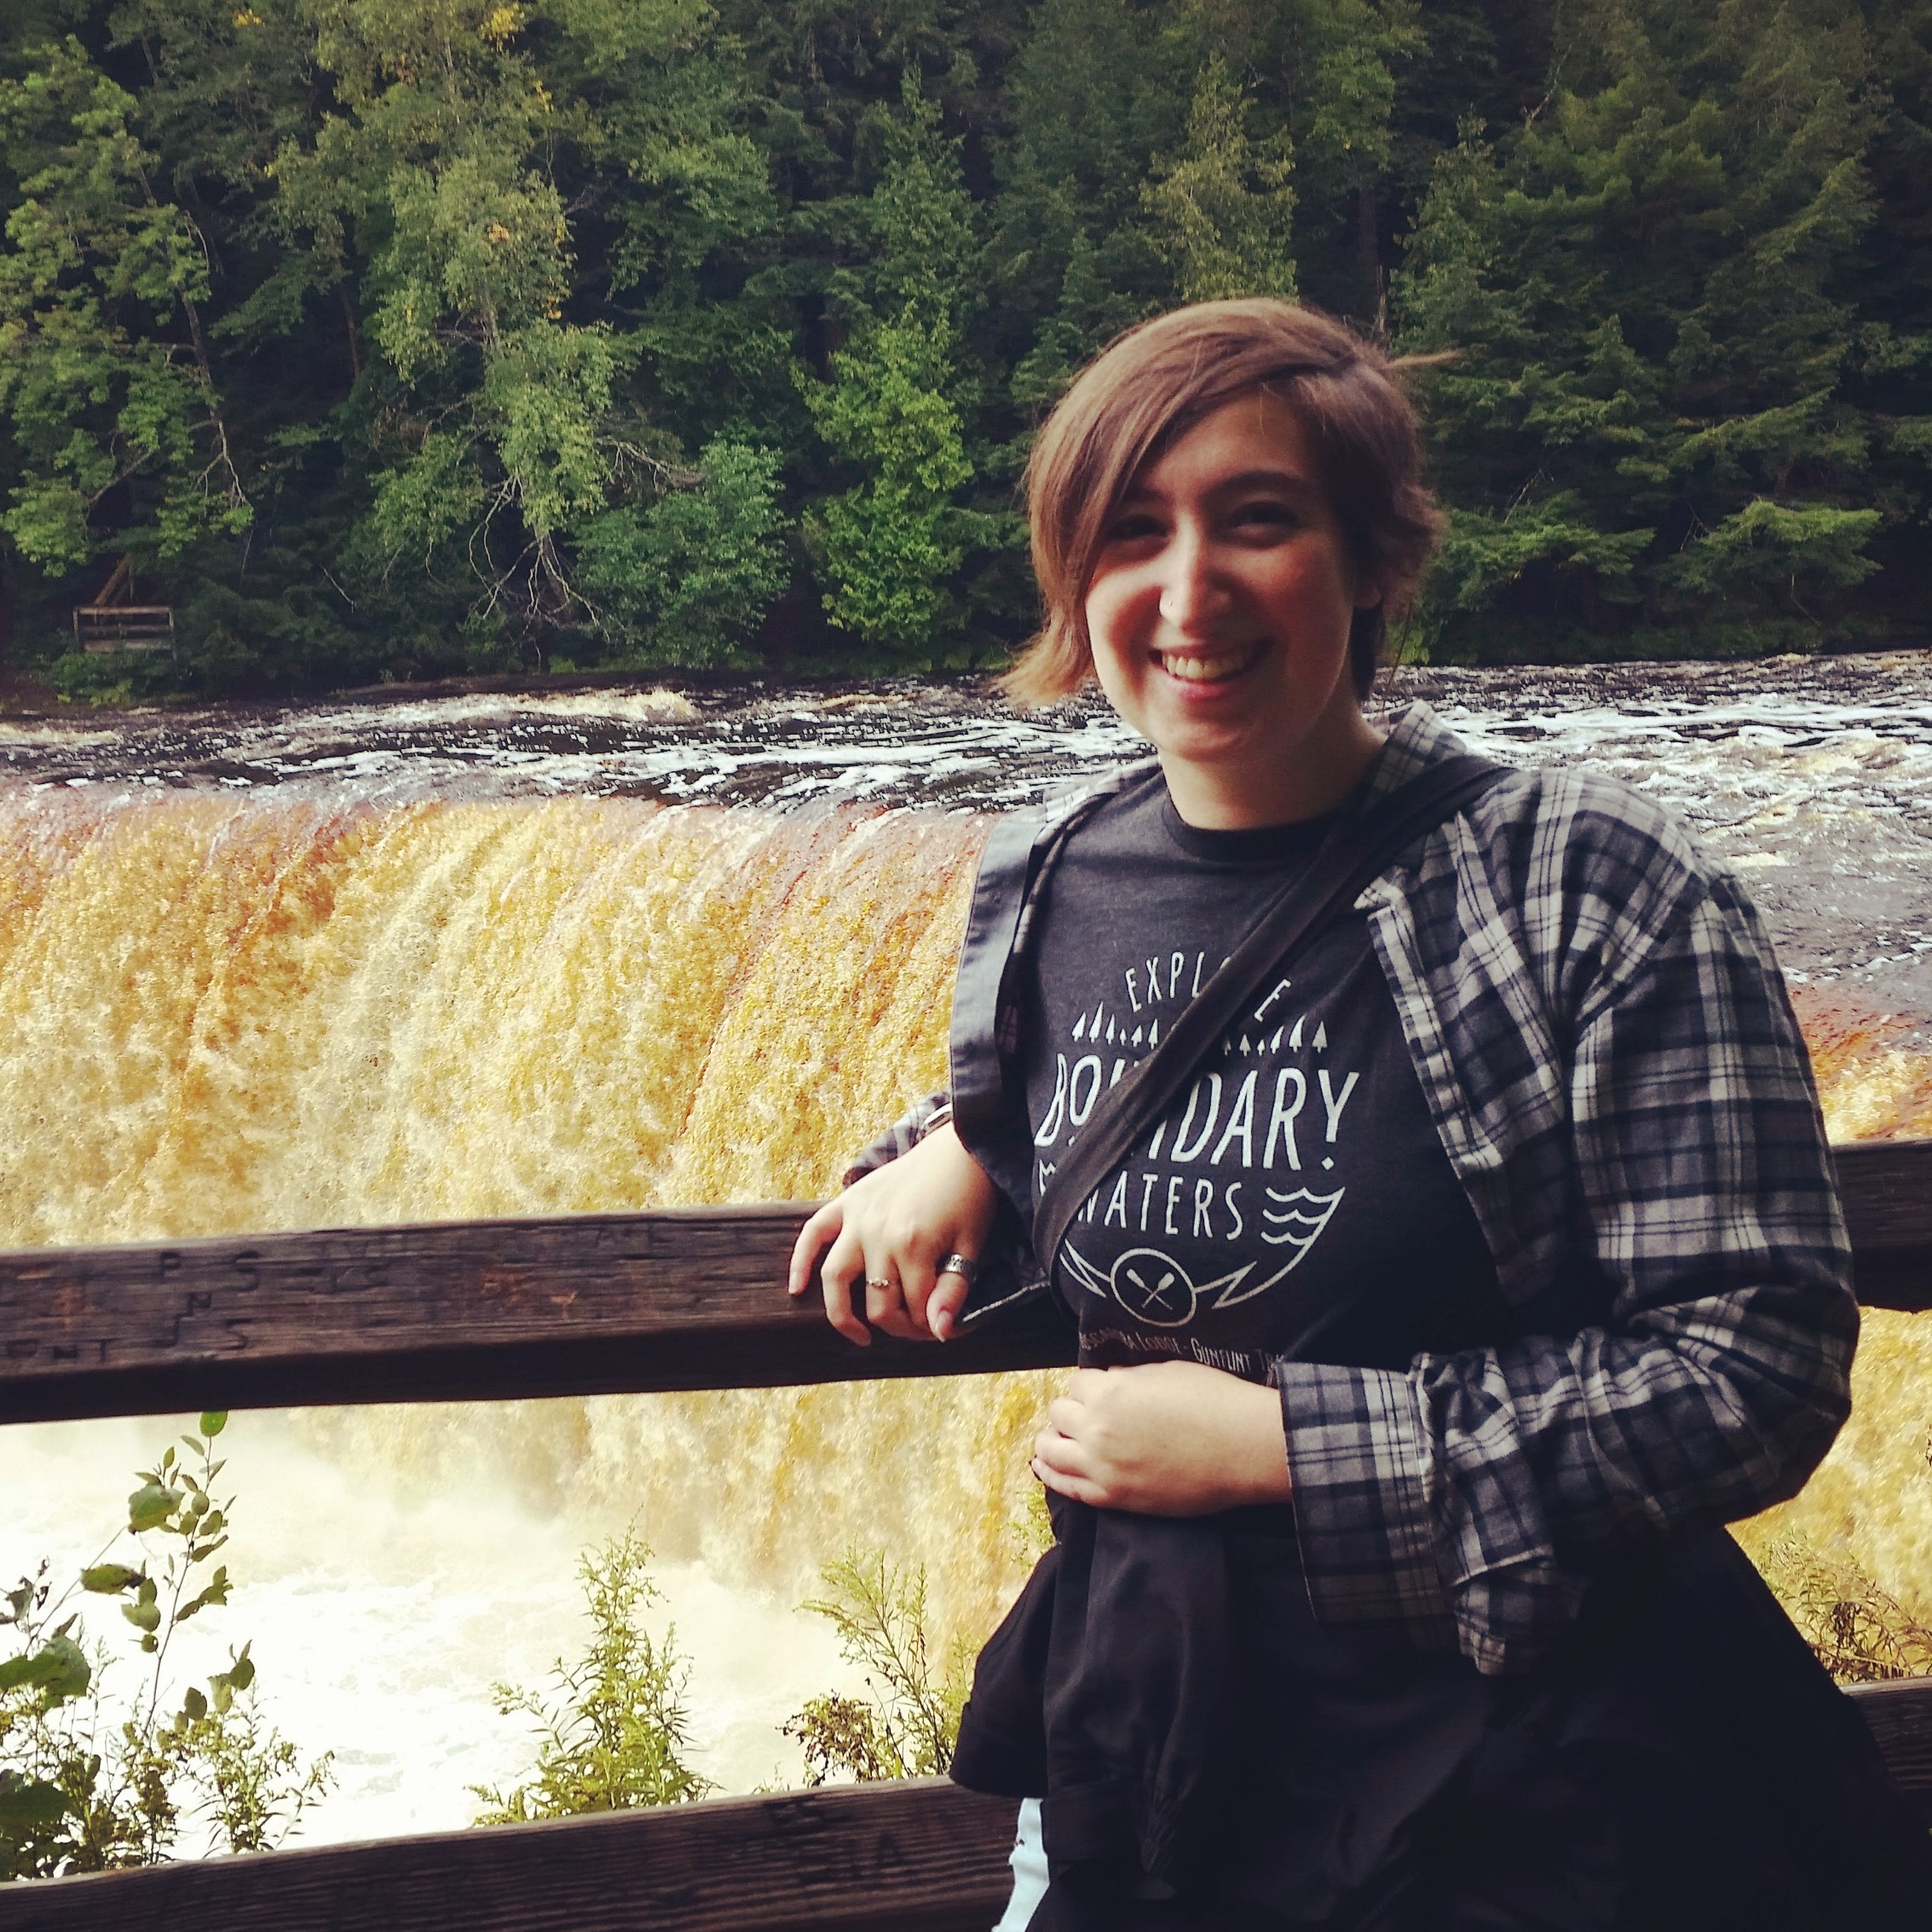 Image of Marian standing in front of waterfall